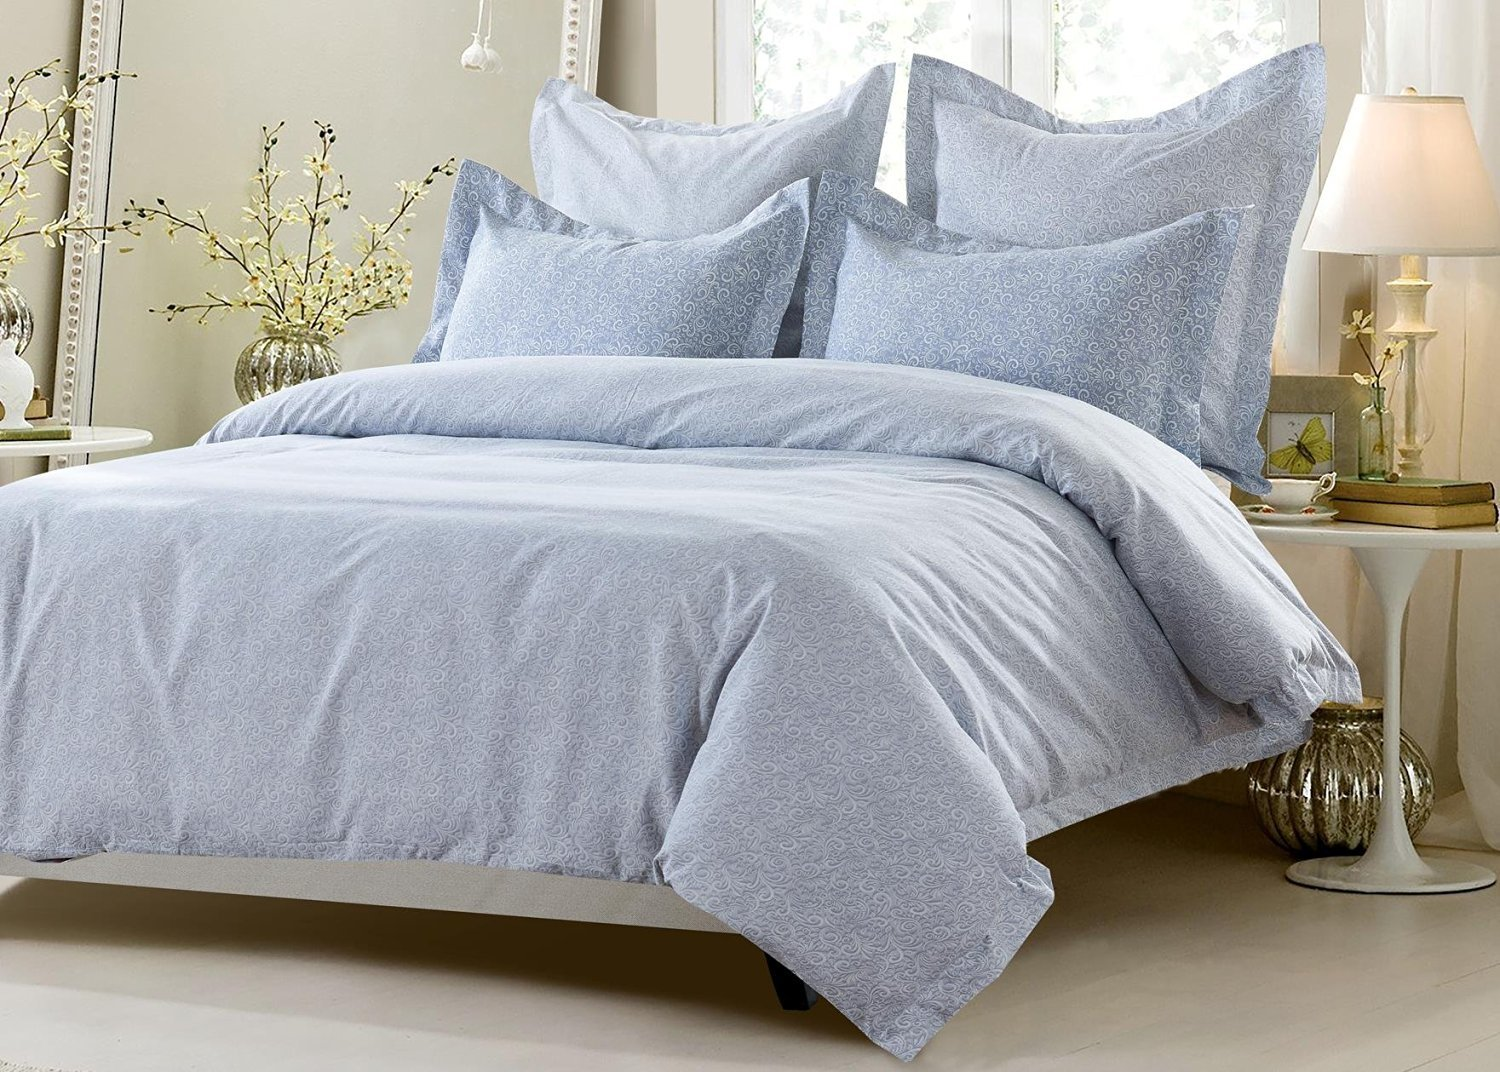 sale fantastic brilliant ideas duvets feather of for duck com theamphletts sets covers duvet